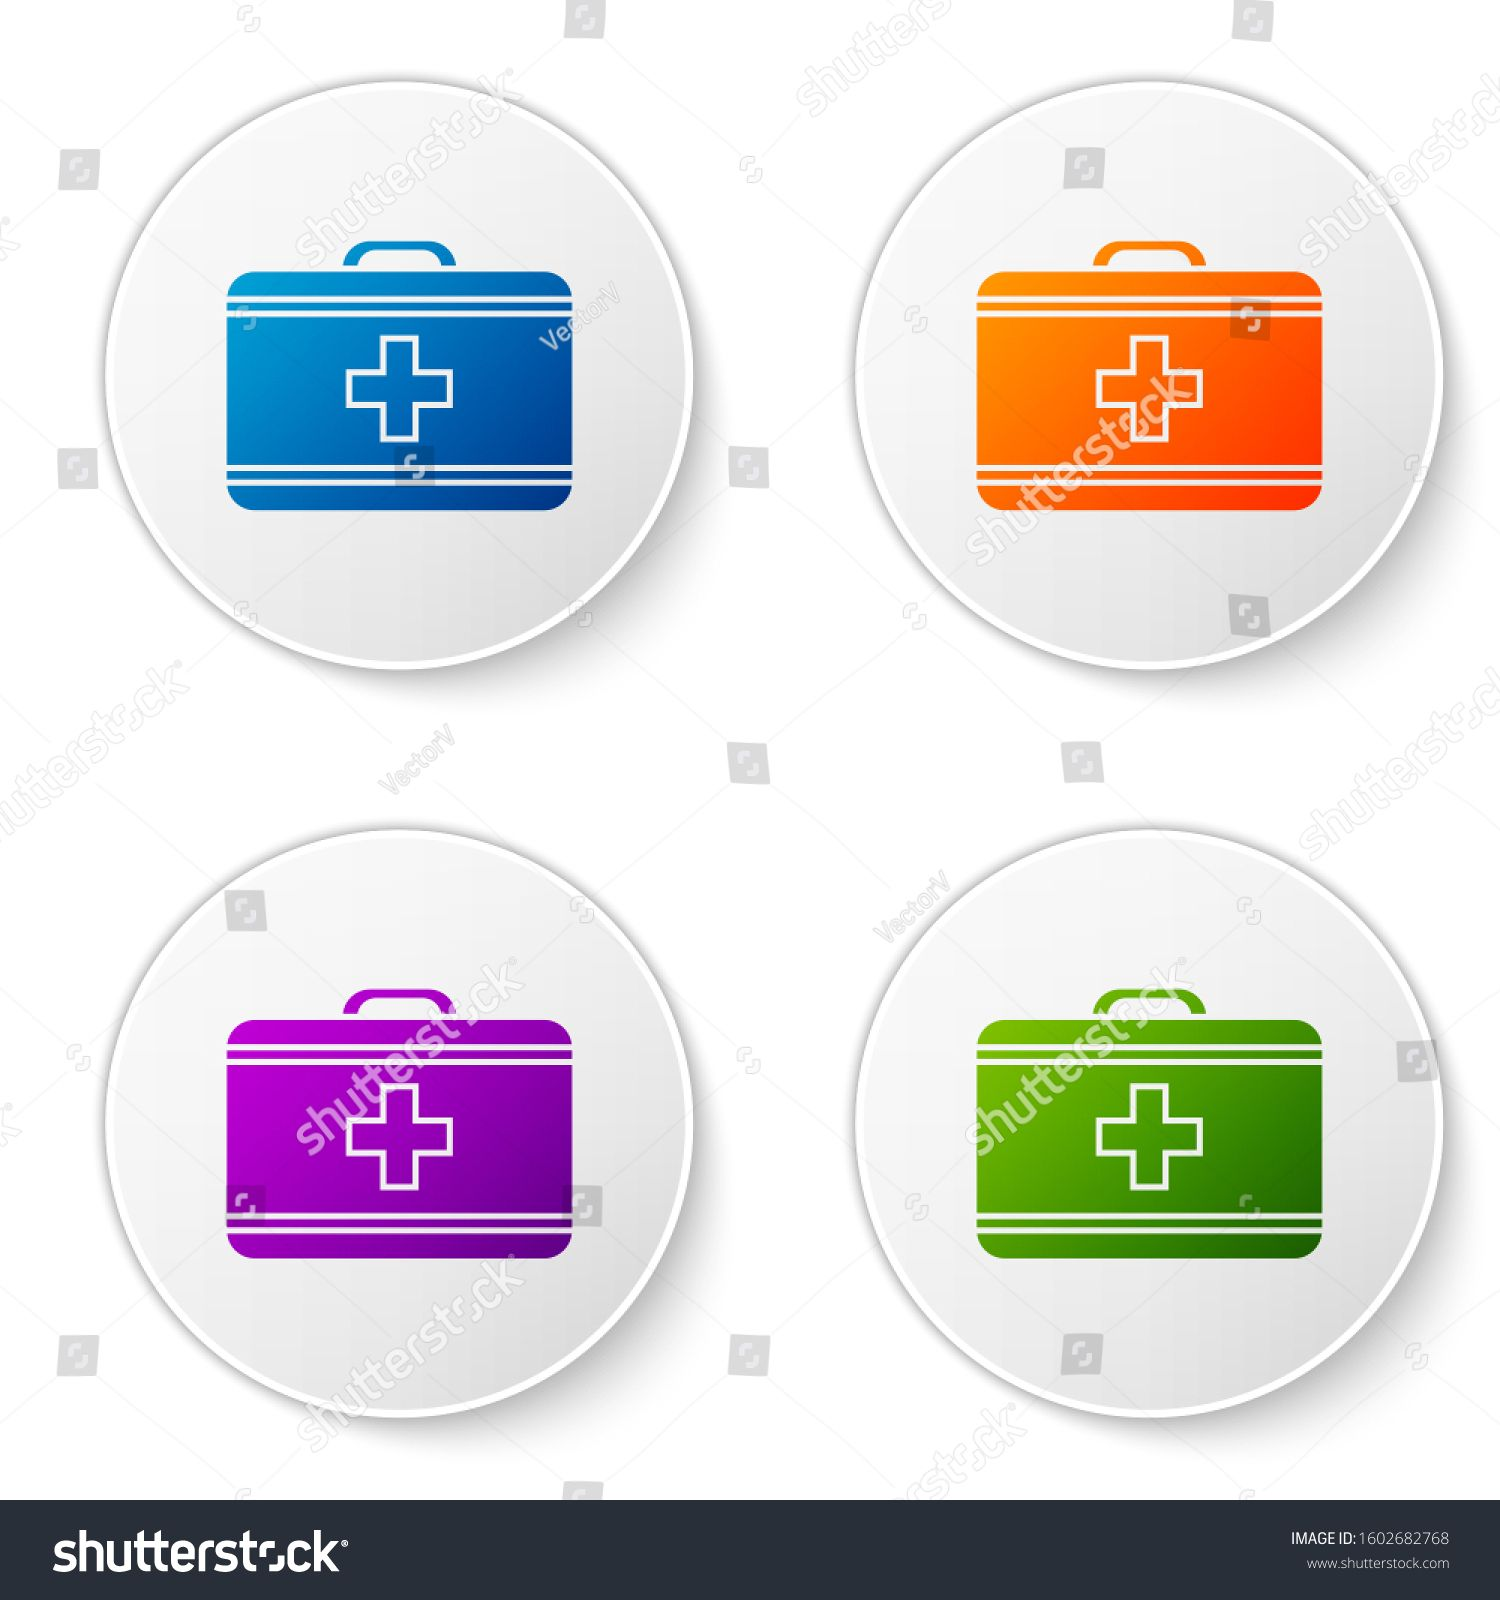 Color first aid kit icon isolated on white background